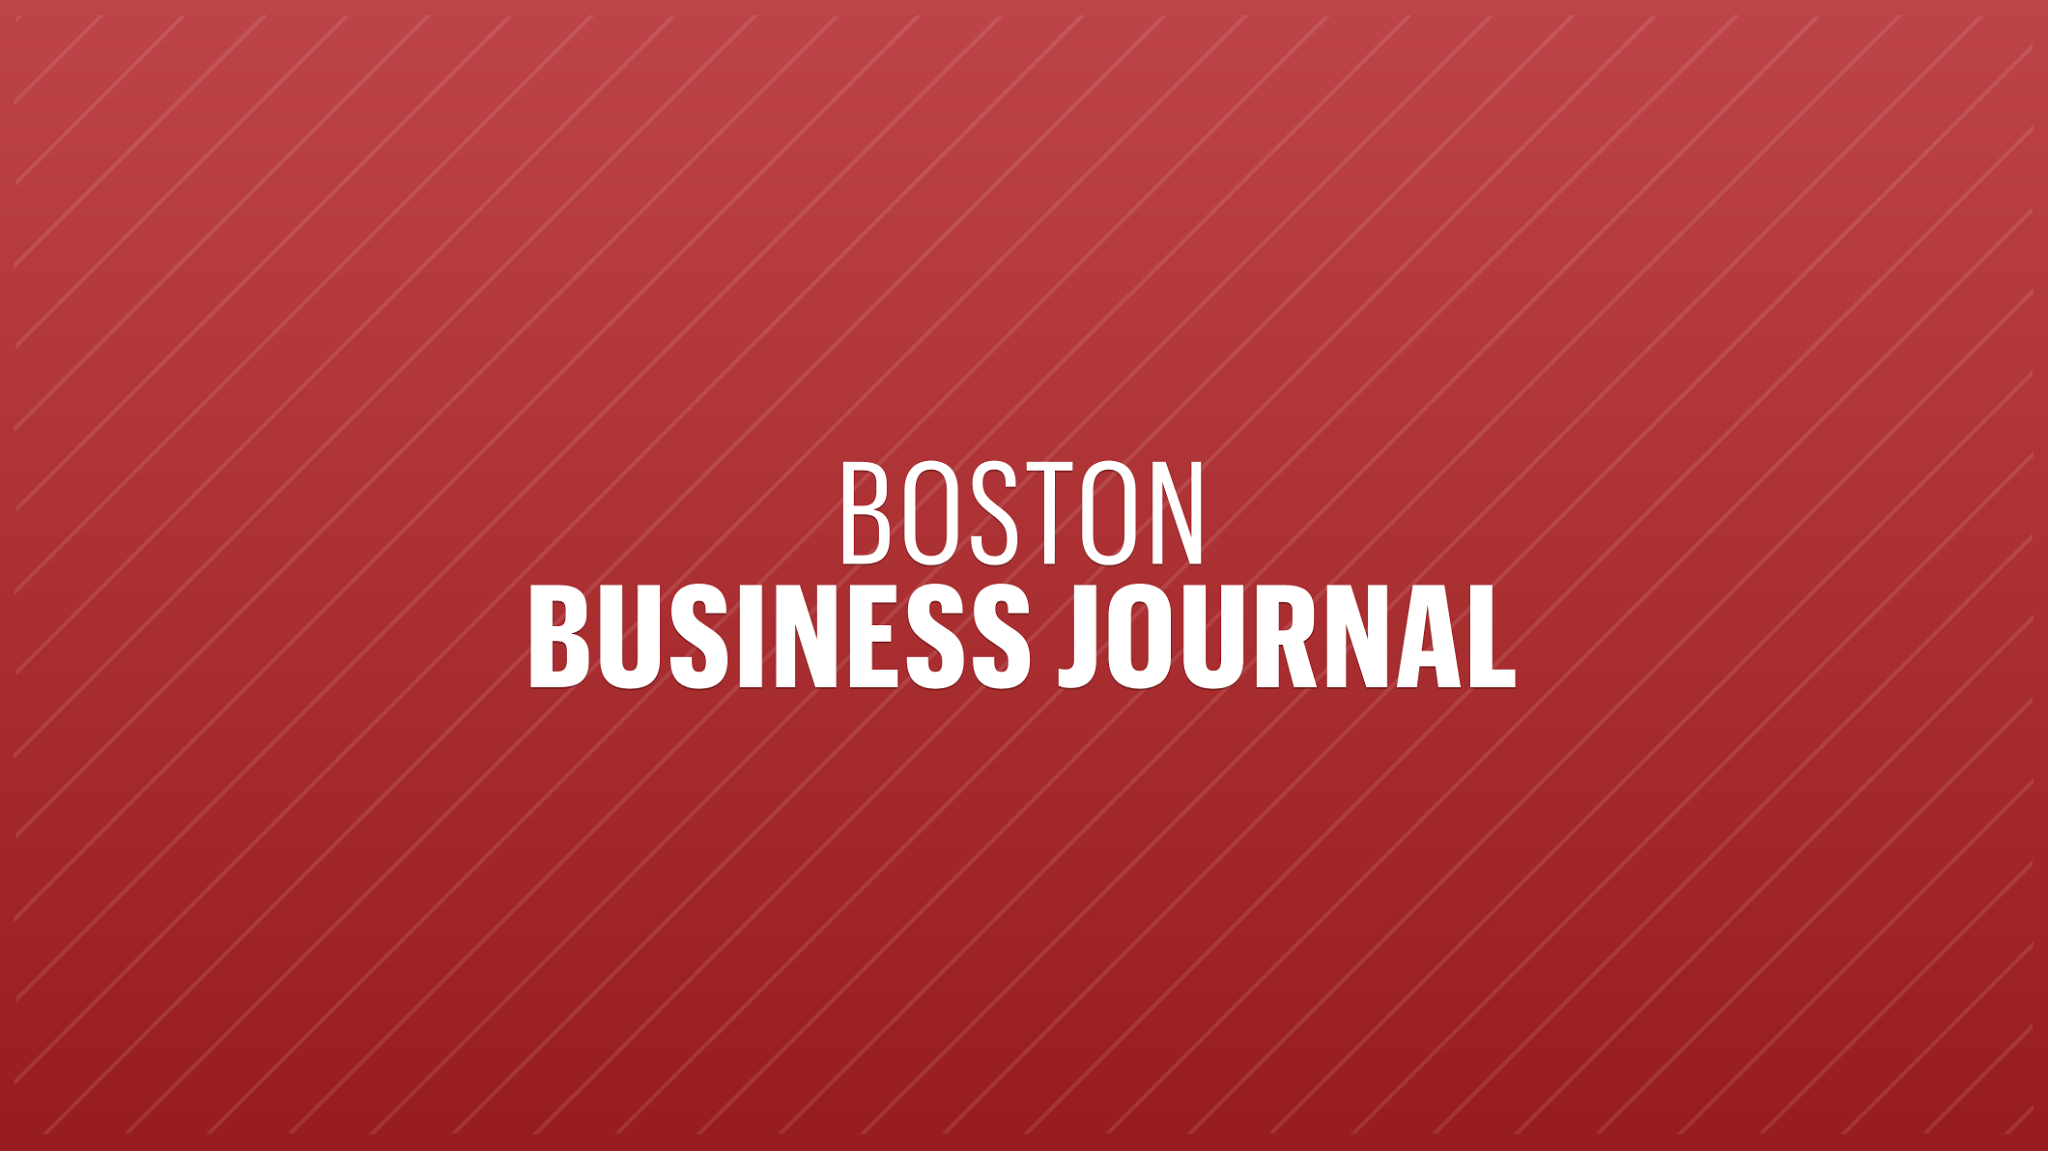 Boston Business Journal logo; red, white